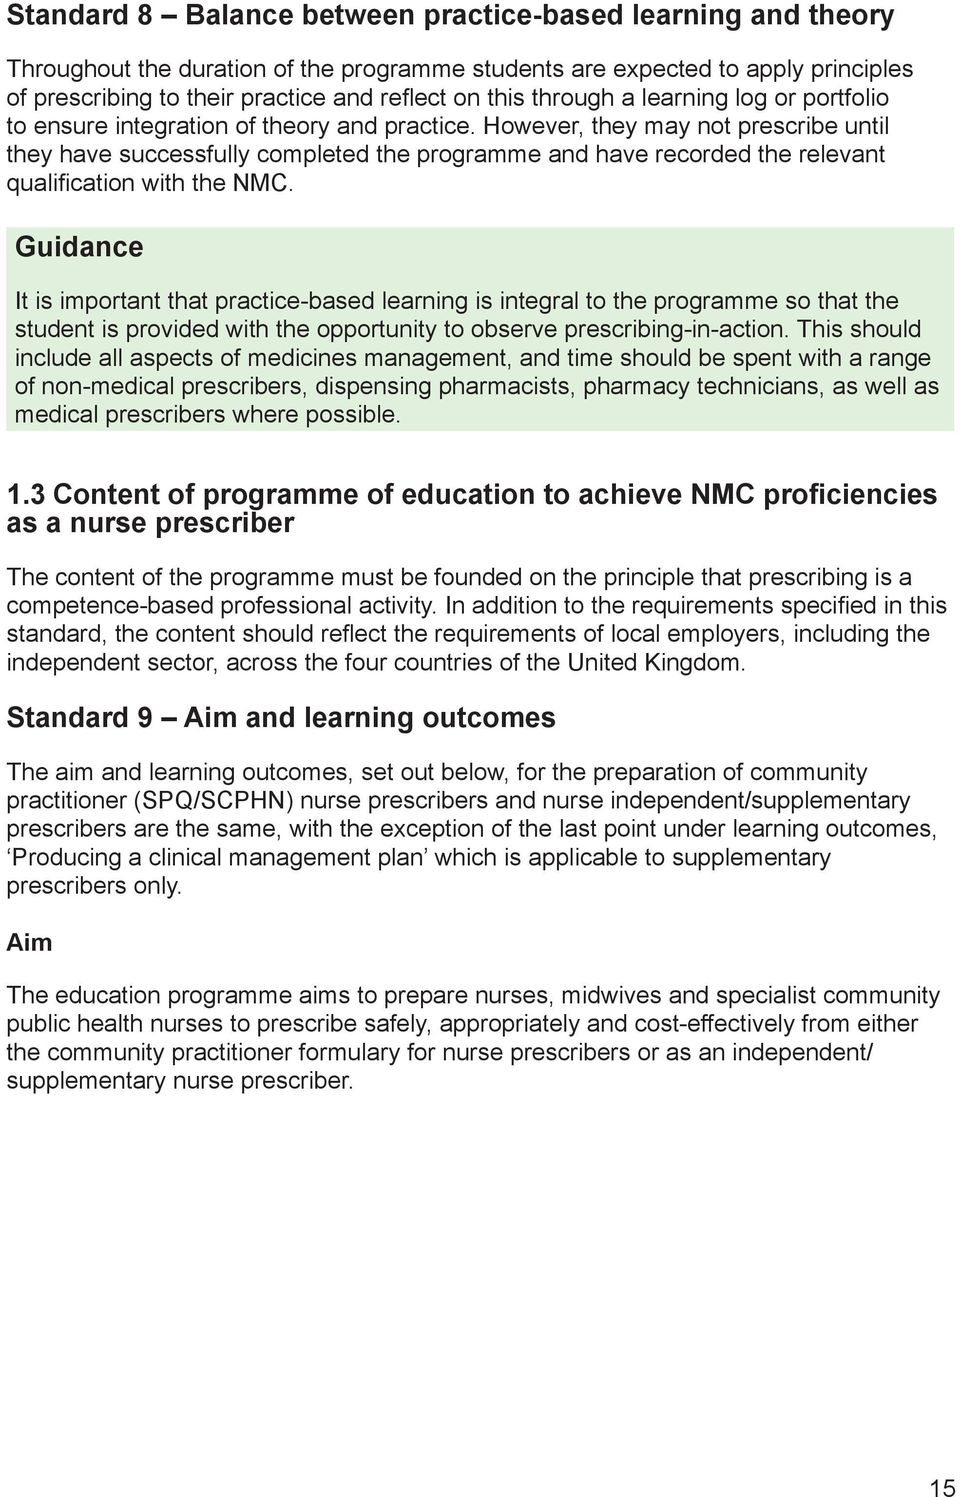 However, they may not prescribe until they have successfully completed the programme and have recorded the relevant qualification with the NMC.